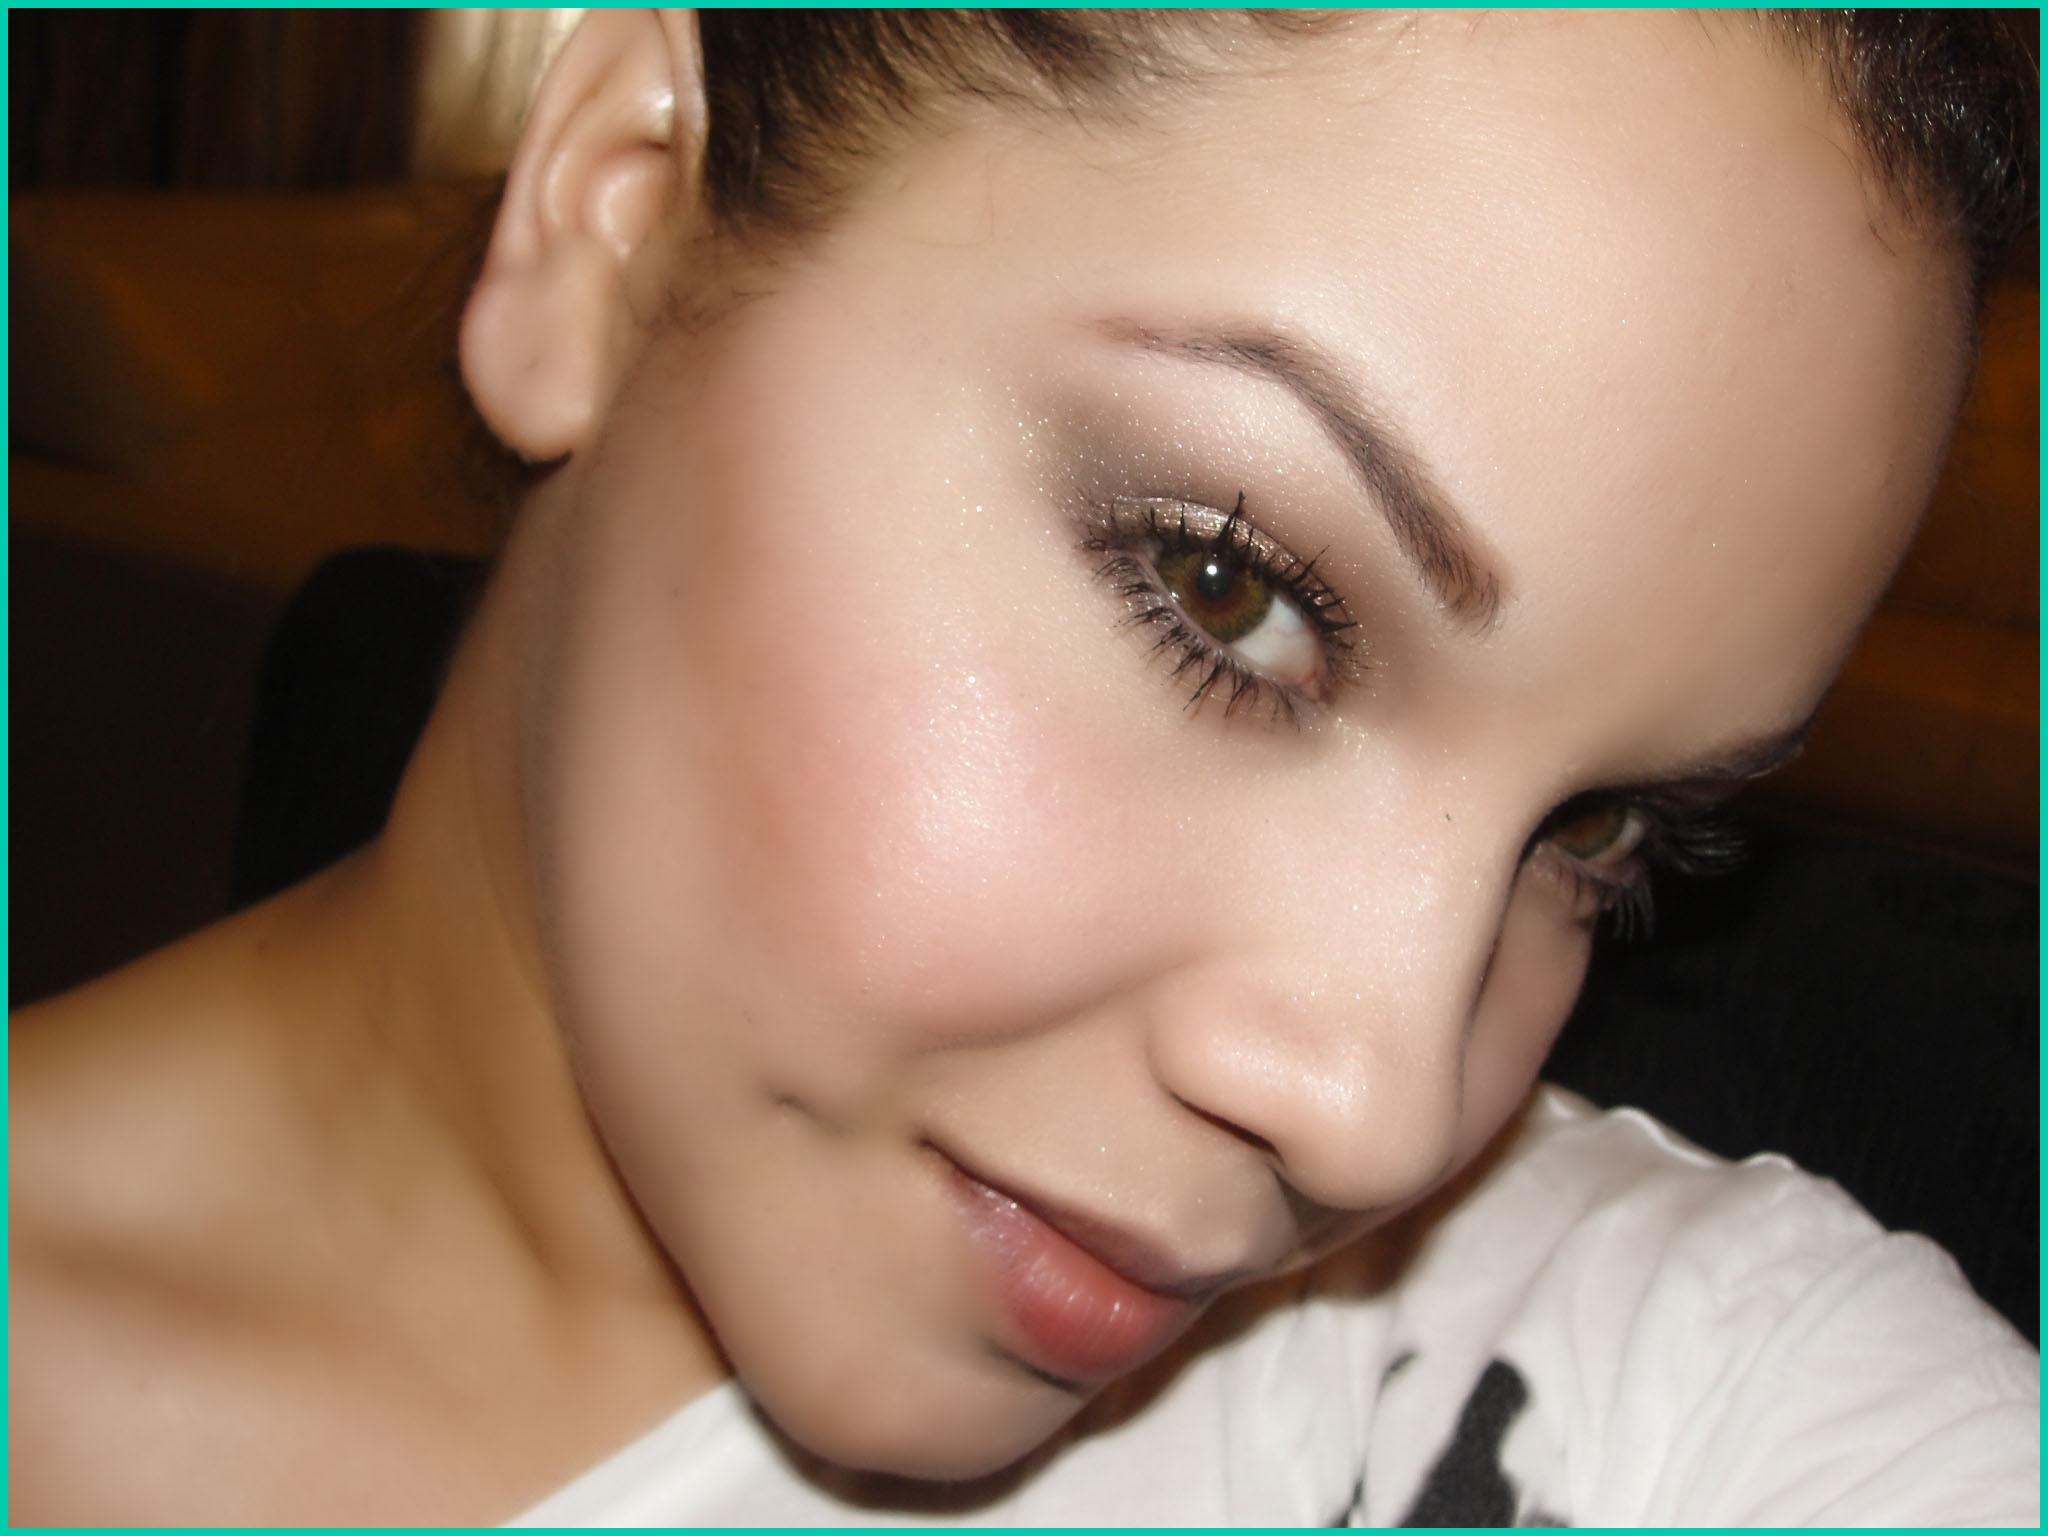 SUBTLY DAYTIME AND SULTRY NIGHTTIME EYE MAKE UP - image 2 - student project